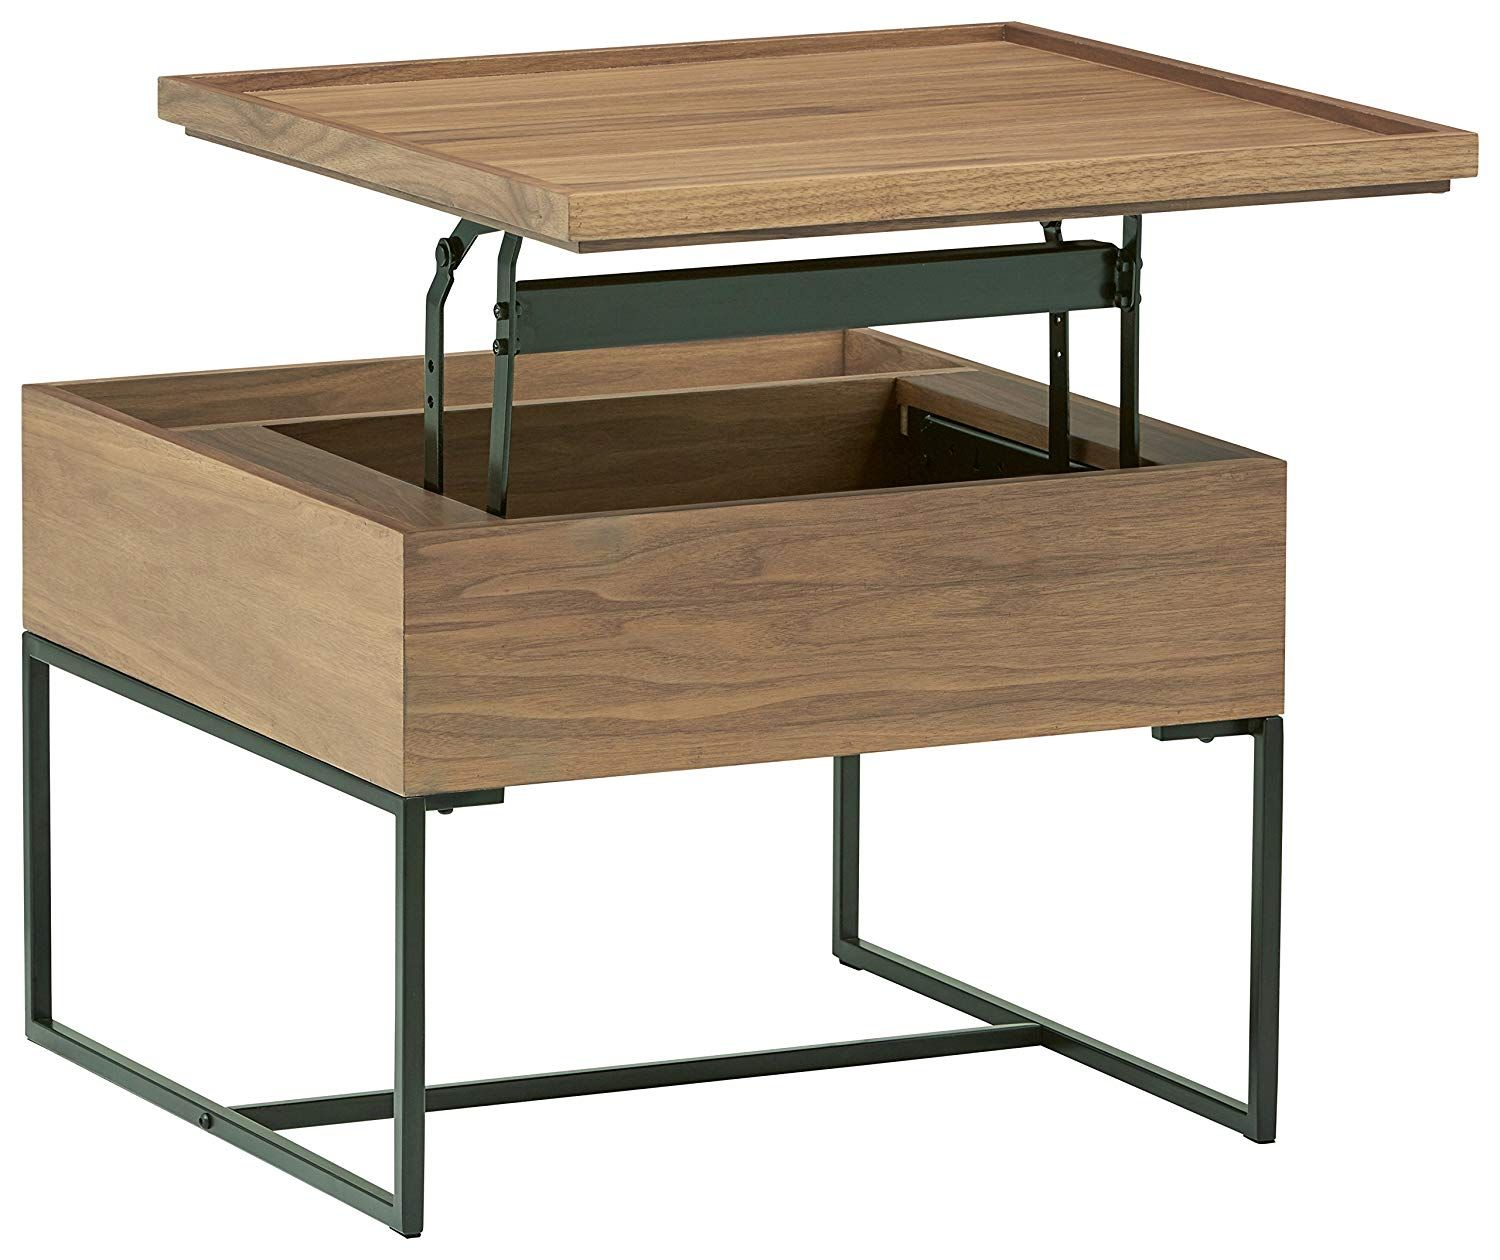 Amazon Com Rivet Axel Lift Up Wood And Metal Side Table Walnut Home Kitchen Metal Side Table Metal End Tables Wood And Metal [ 1260 x 1500 Pixel ]